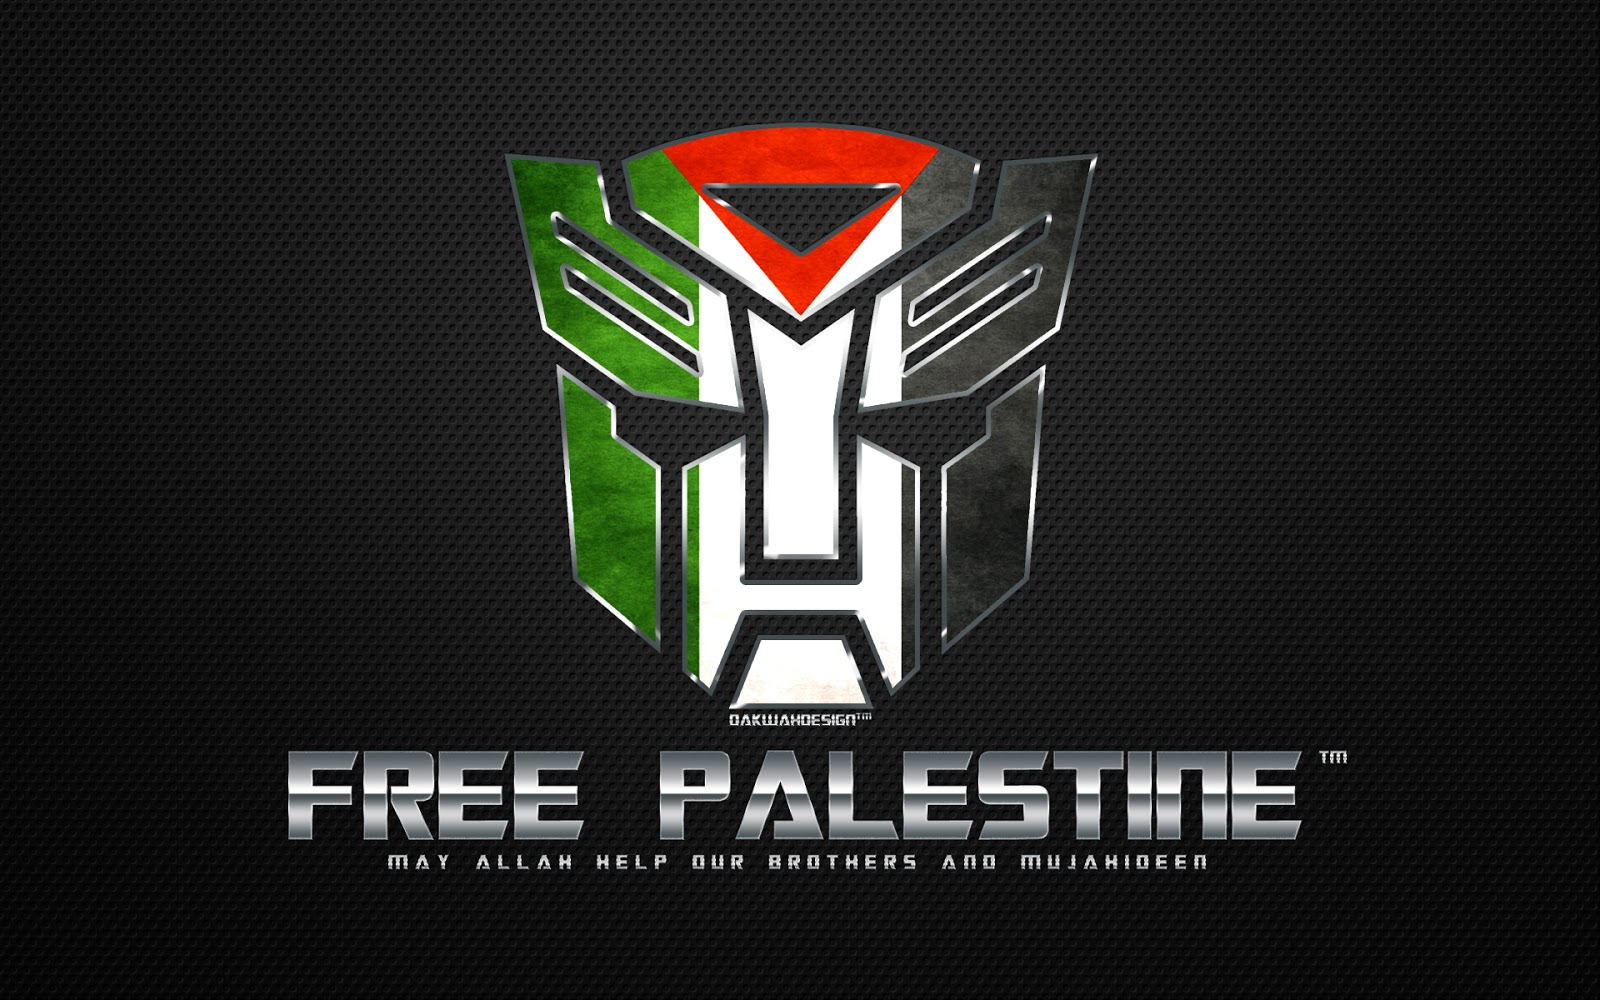 76 free palestine wallpaper on wallpapersafari - Palestine flag wallpaper hd ...